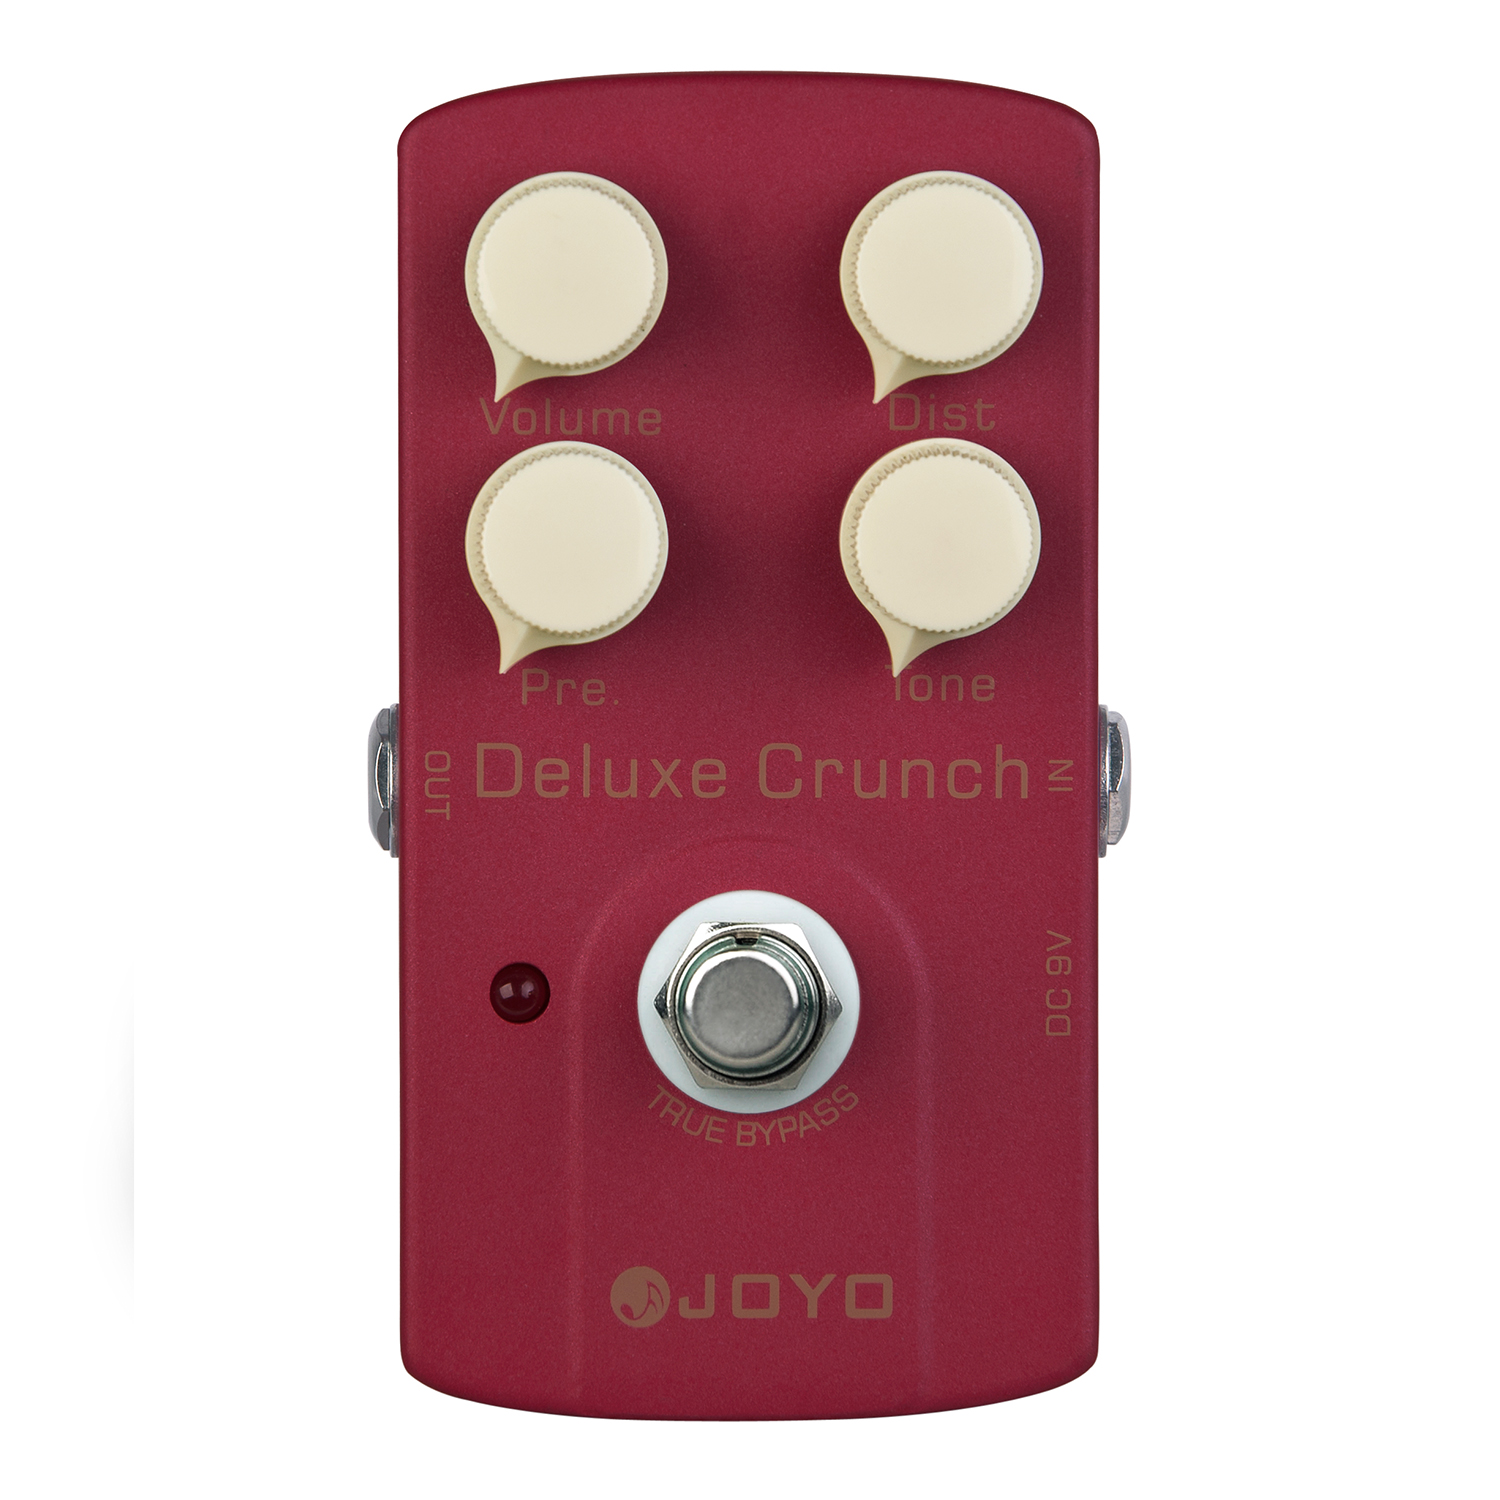 JOYO Deluxe Crunch Distortion Electric Guitar Effect Pedal True Bypass JF-39 with Free Connector and Footswitch Topper mooer hustle drive distortion guitar effect pedal micro pedal true bypass effects with free connector and footswitch topper